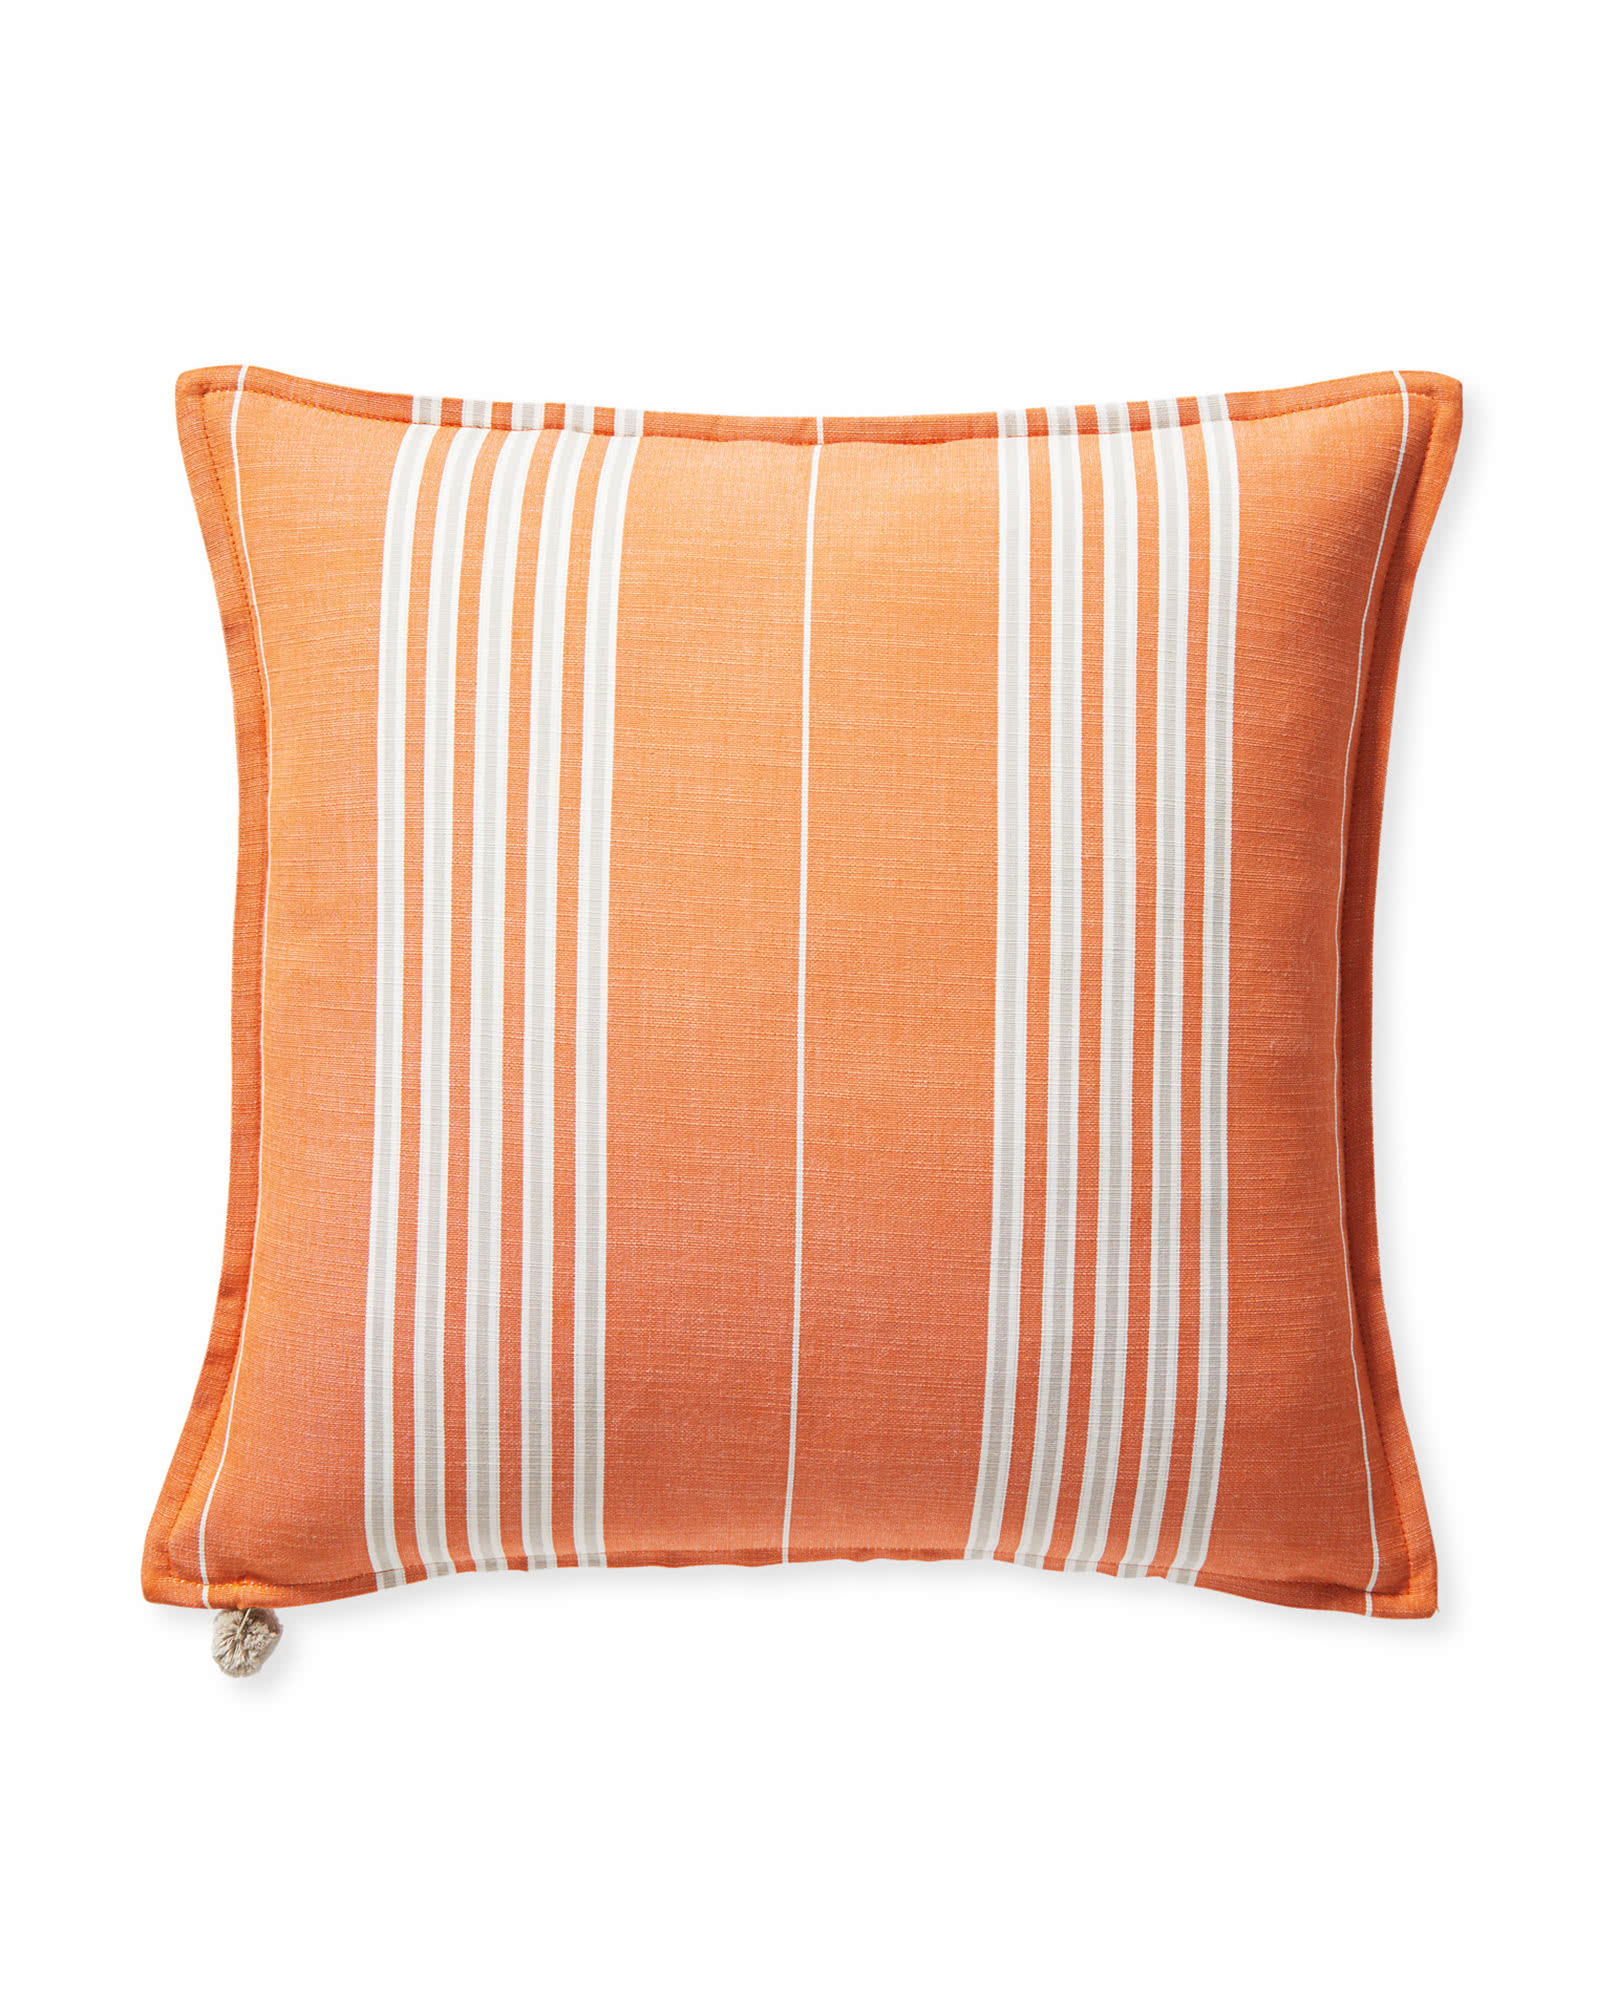 Perennials® Lake Stripe Pillow Cover, Orange